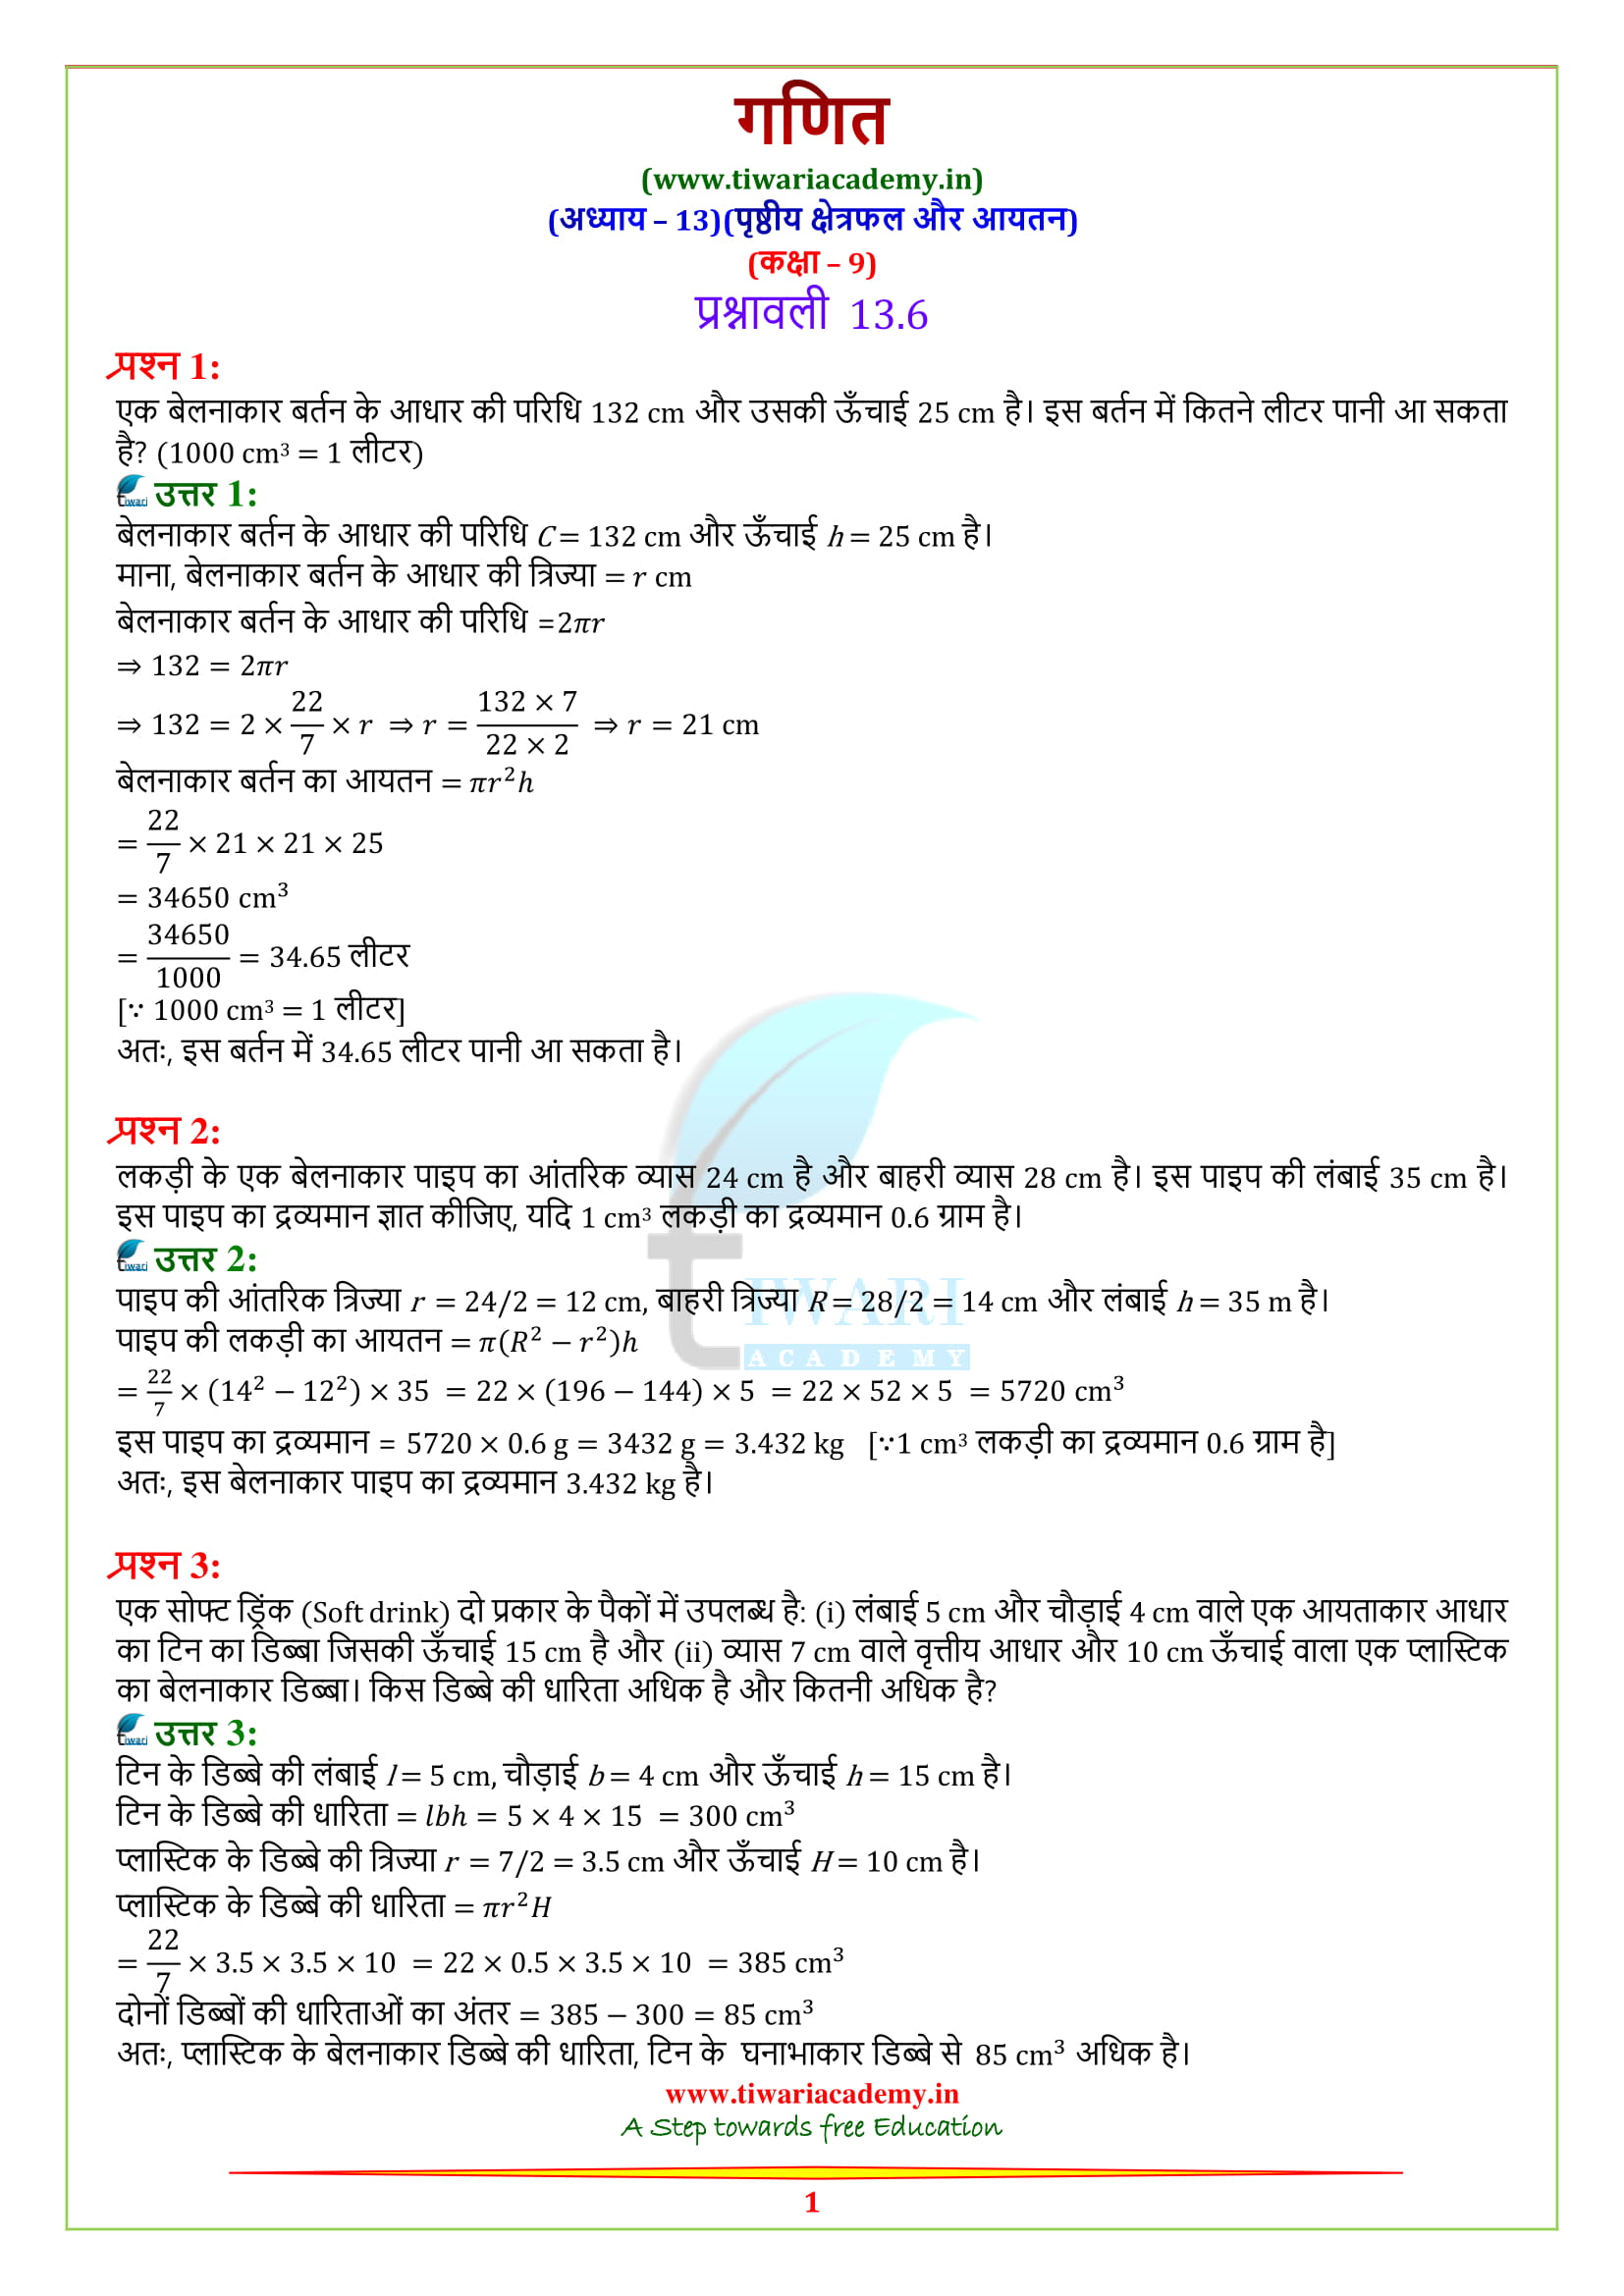 NCERT Solutions for class 9 Maths Exercise 13.6 all question in explation.